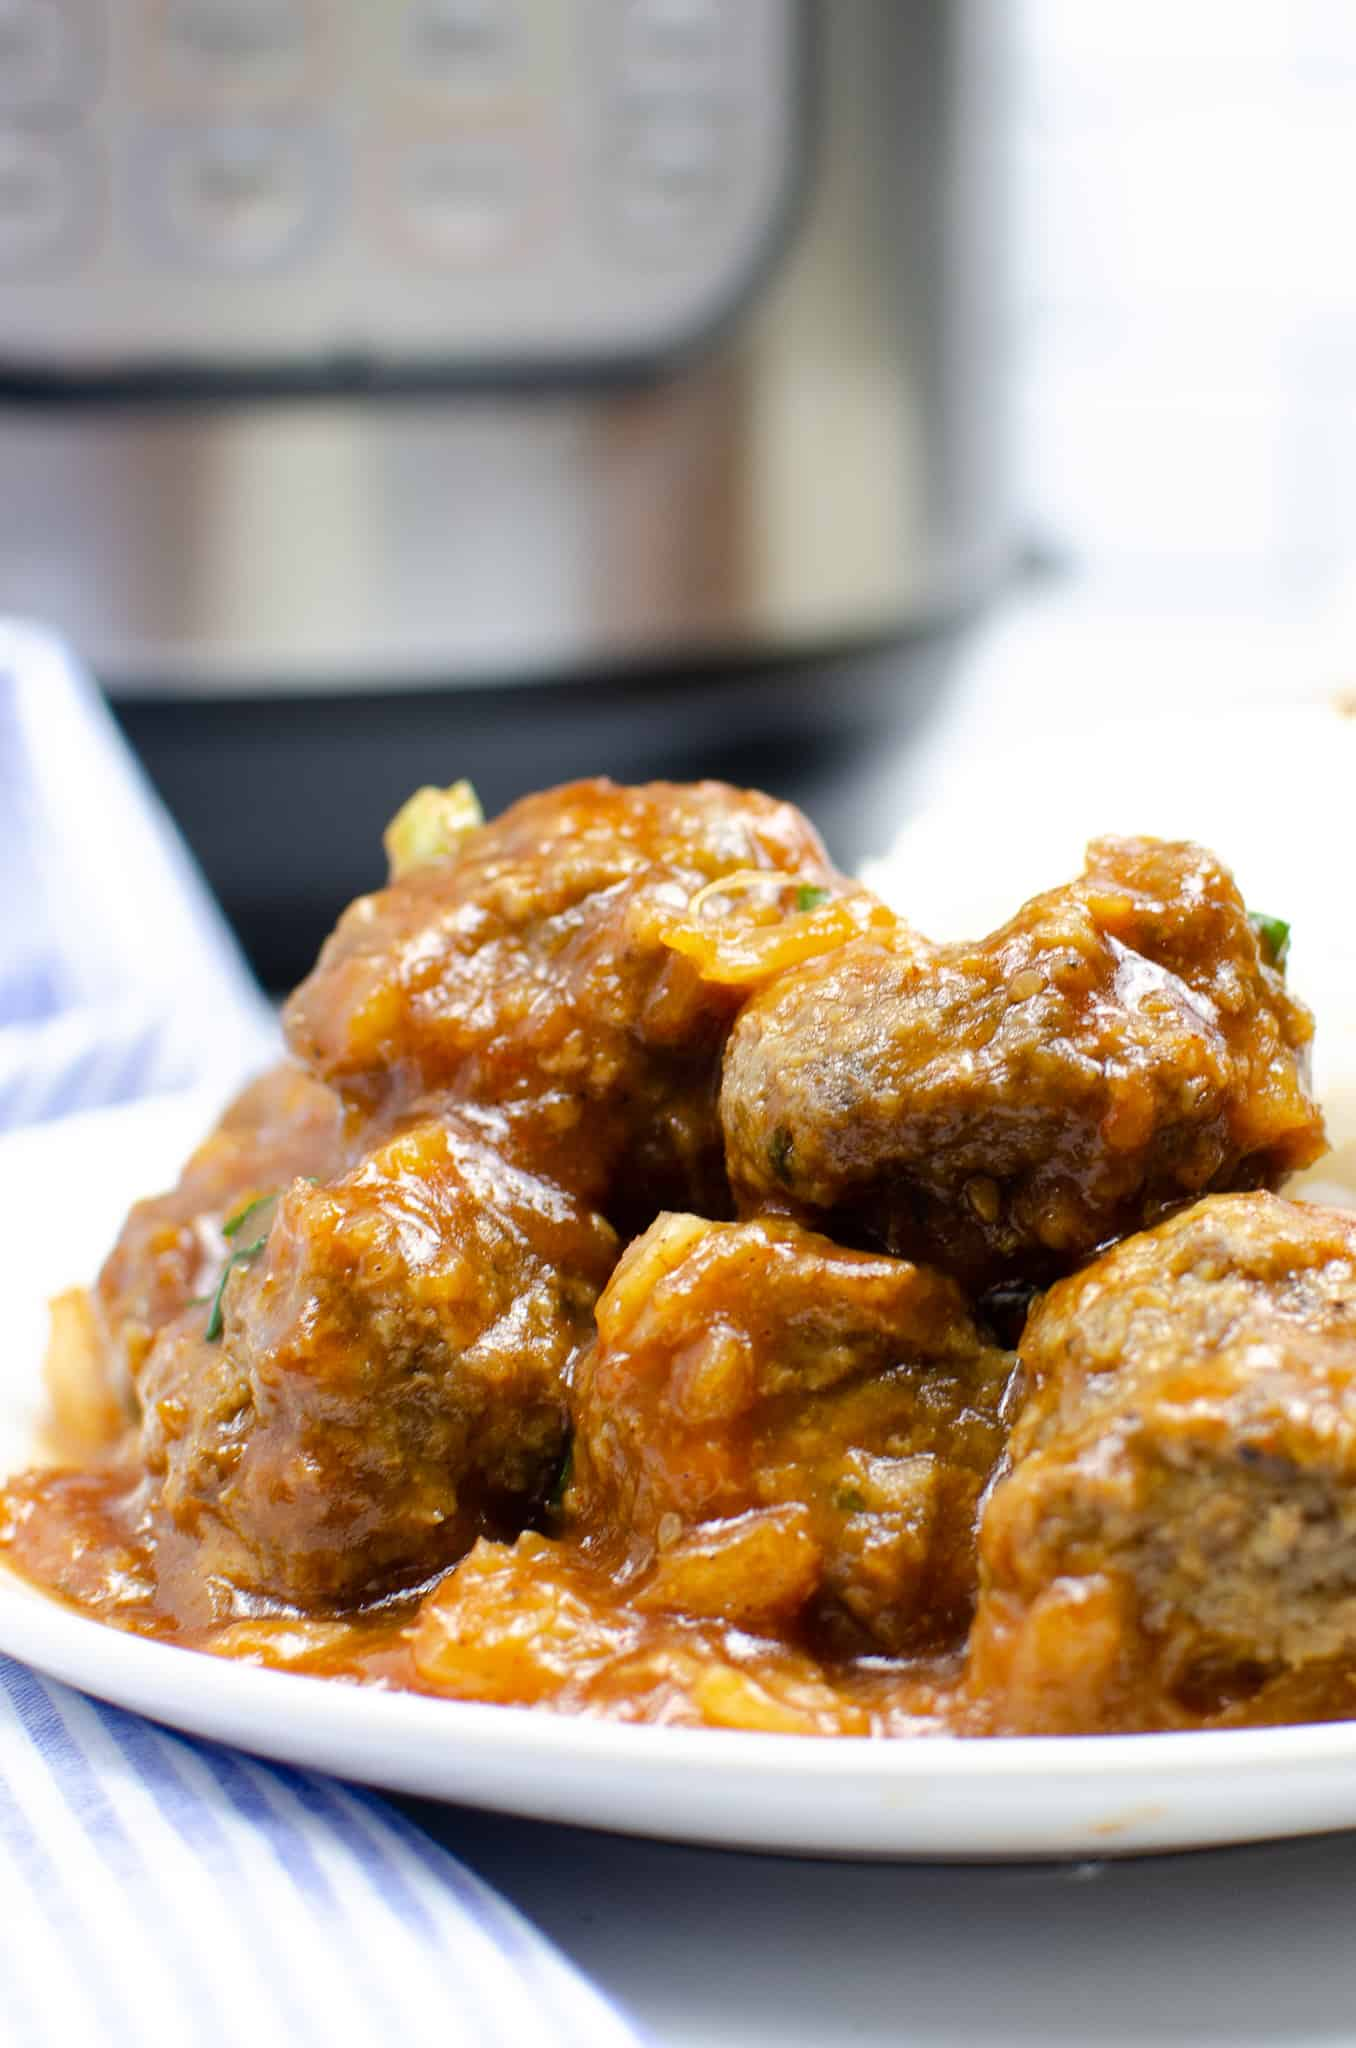 Plate of Instant Pot Hawaiian Meatballs with an Instant Pot in the background